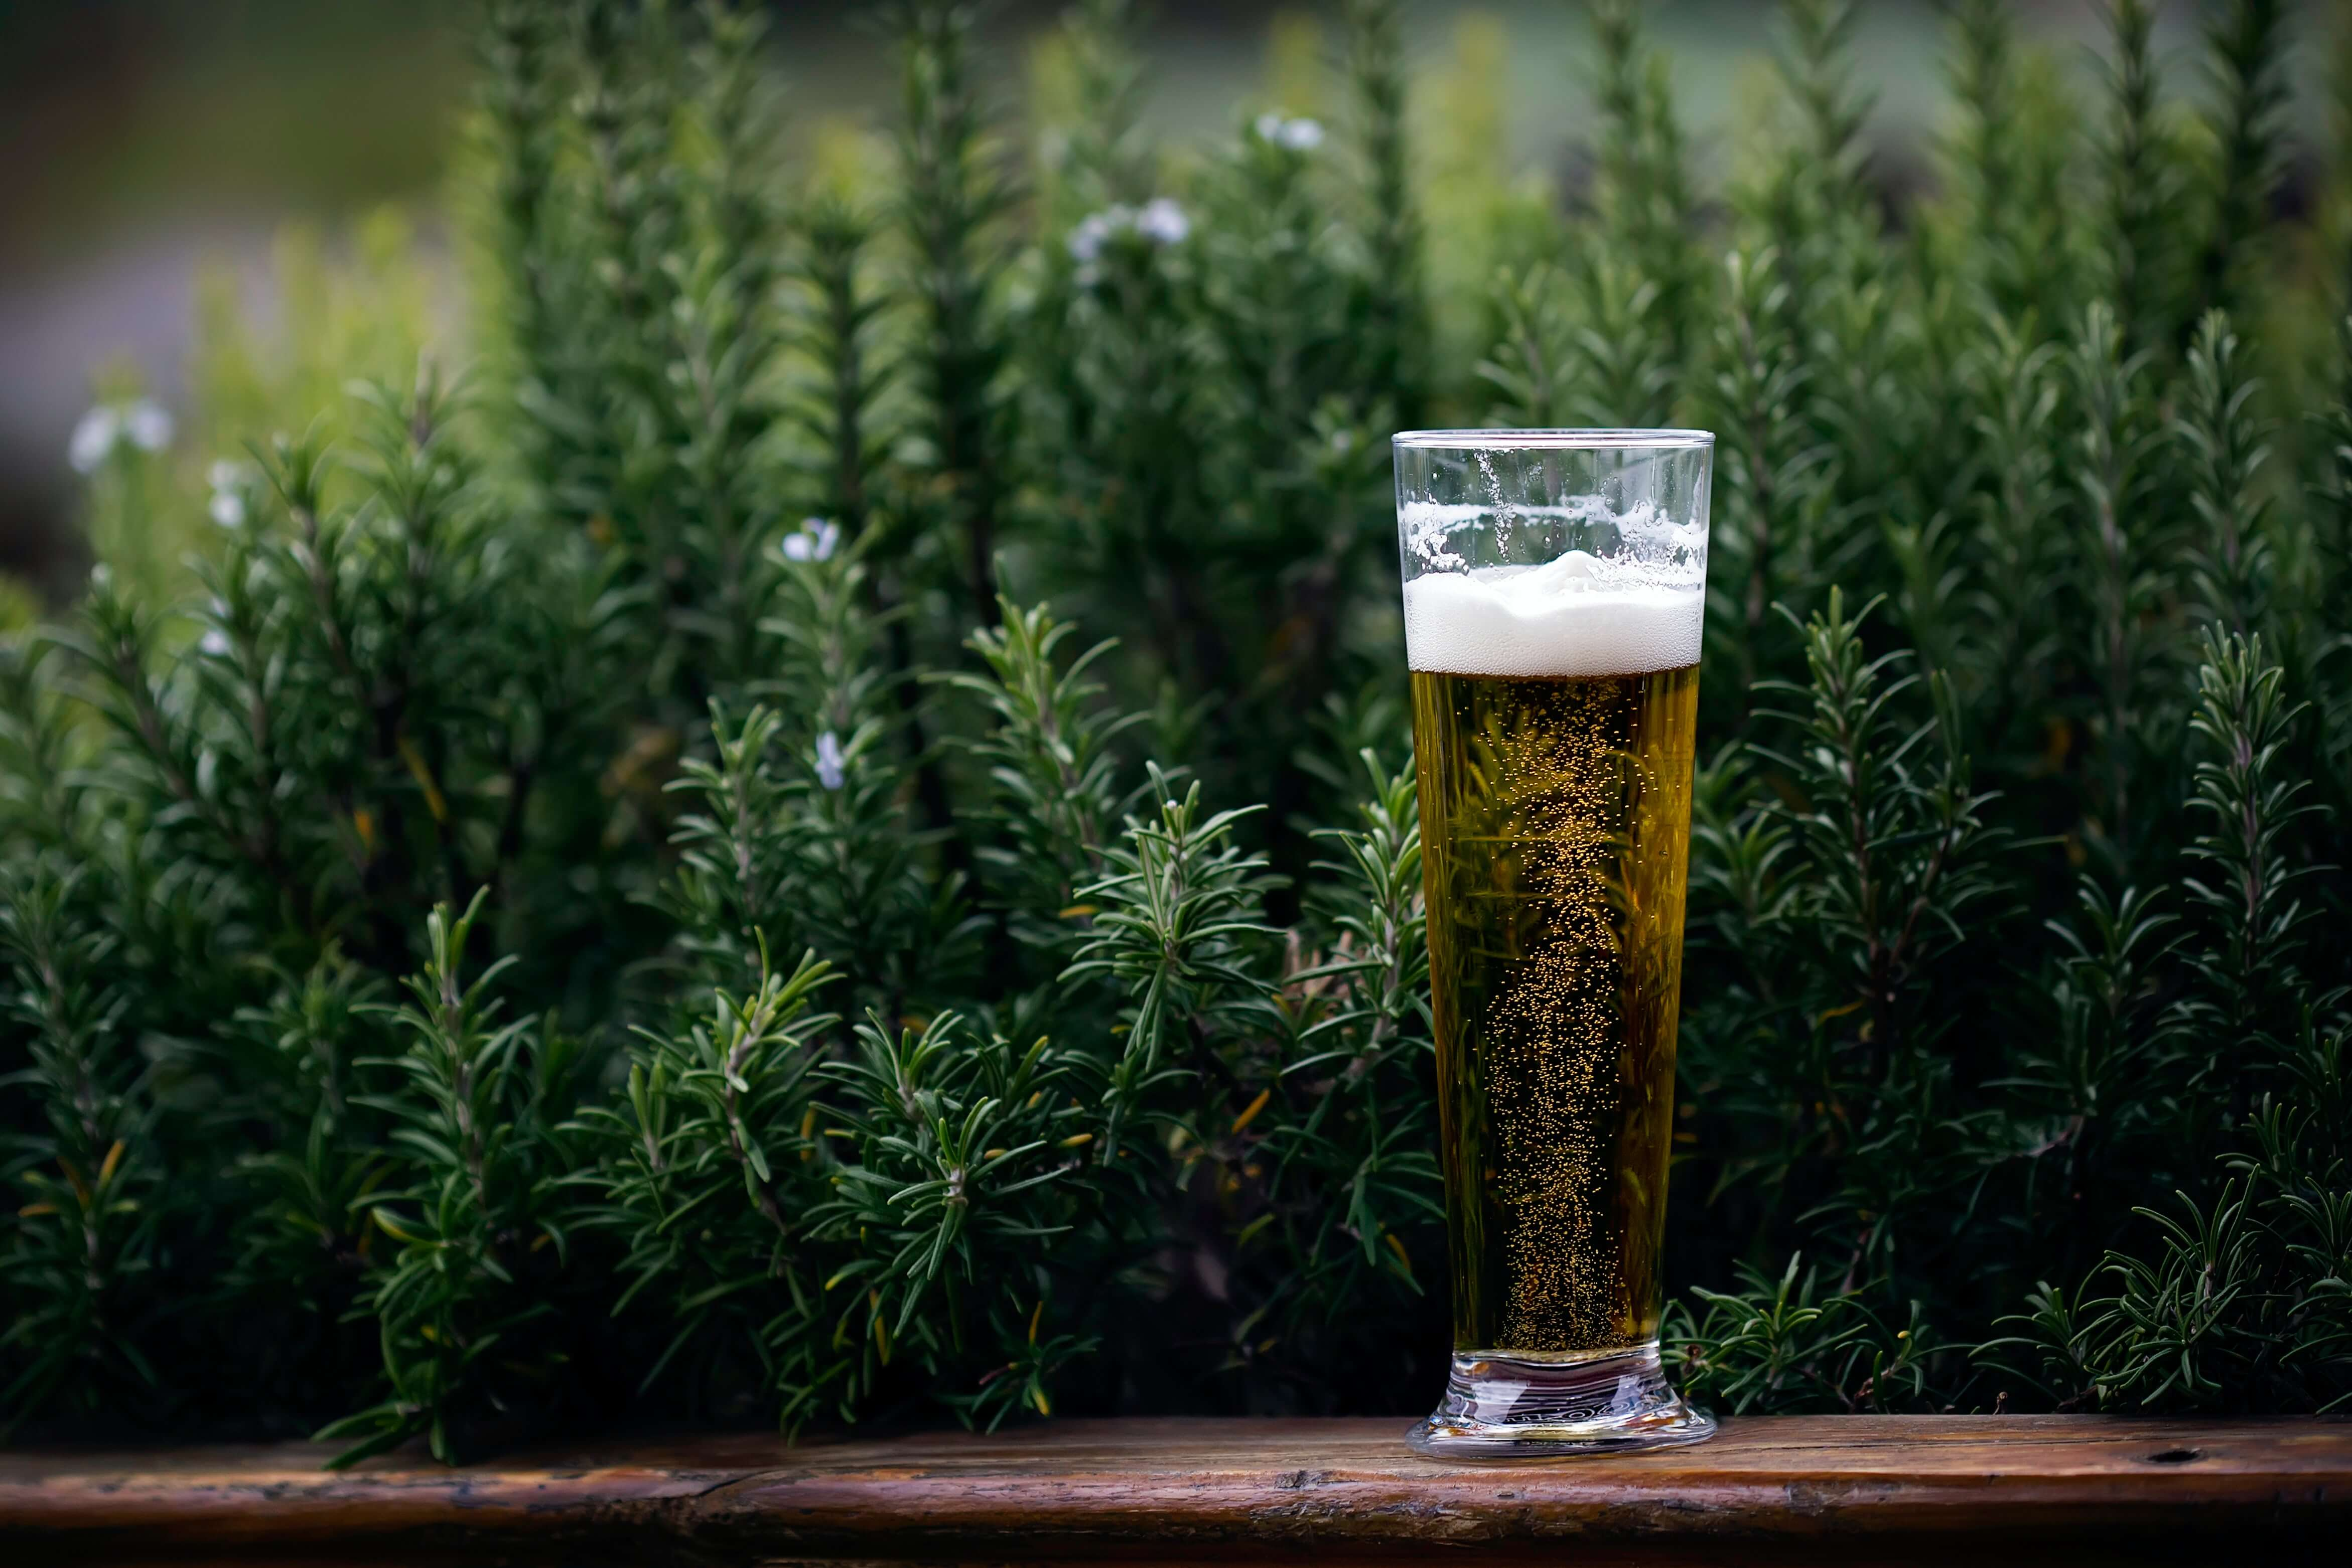 Cold Glass Of Beer By Some Plants